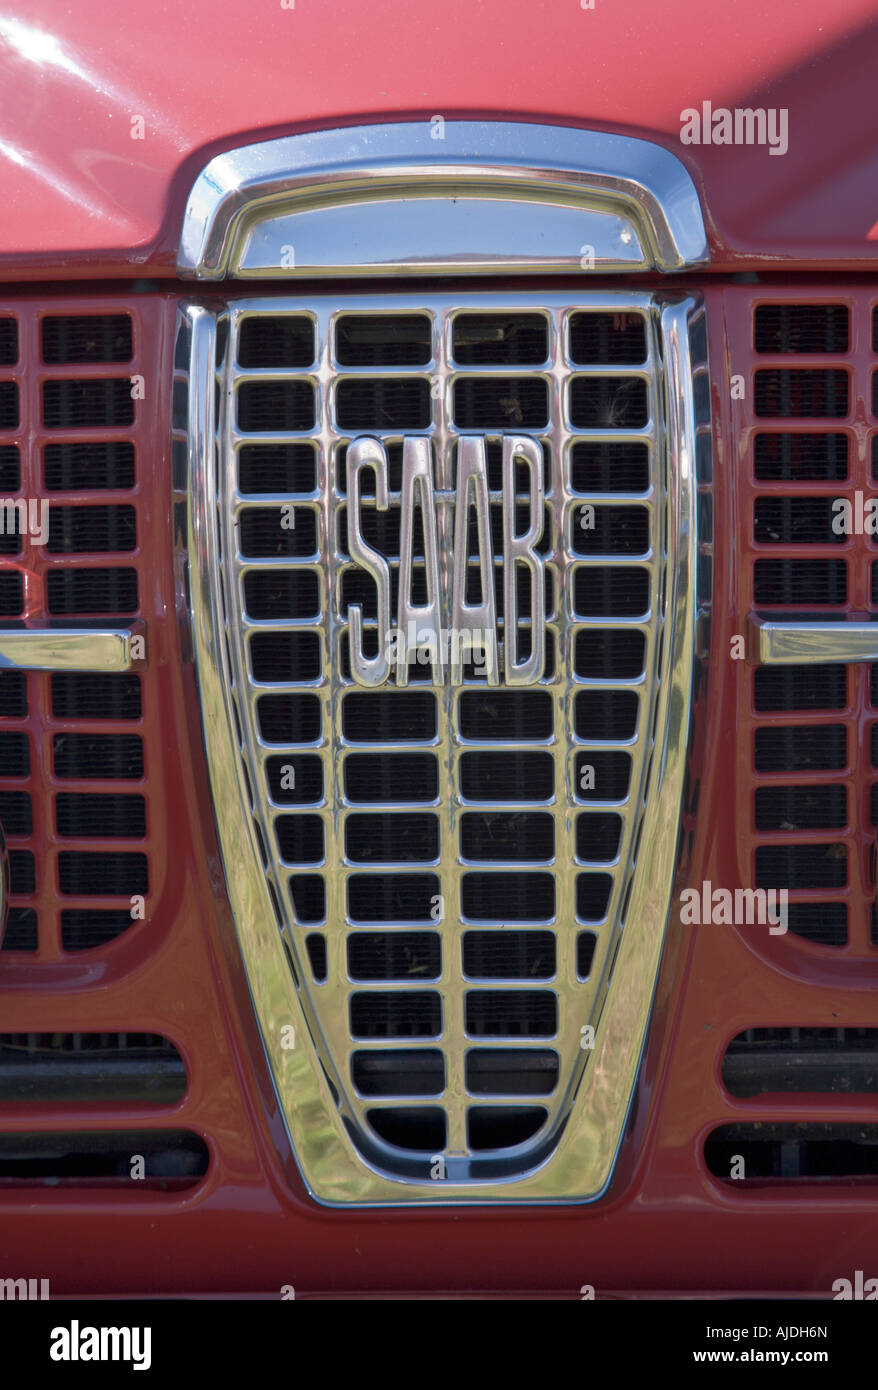 Grill and logo of vintage Saab car - Stock Image